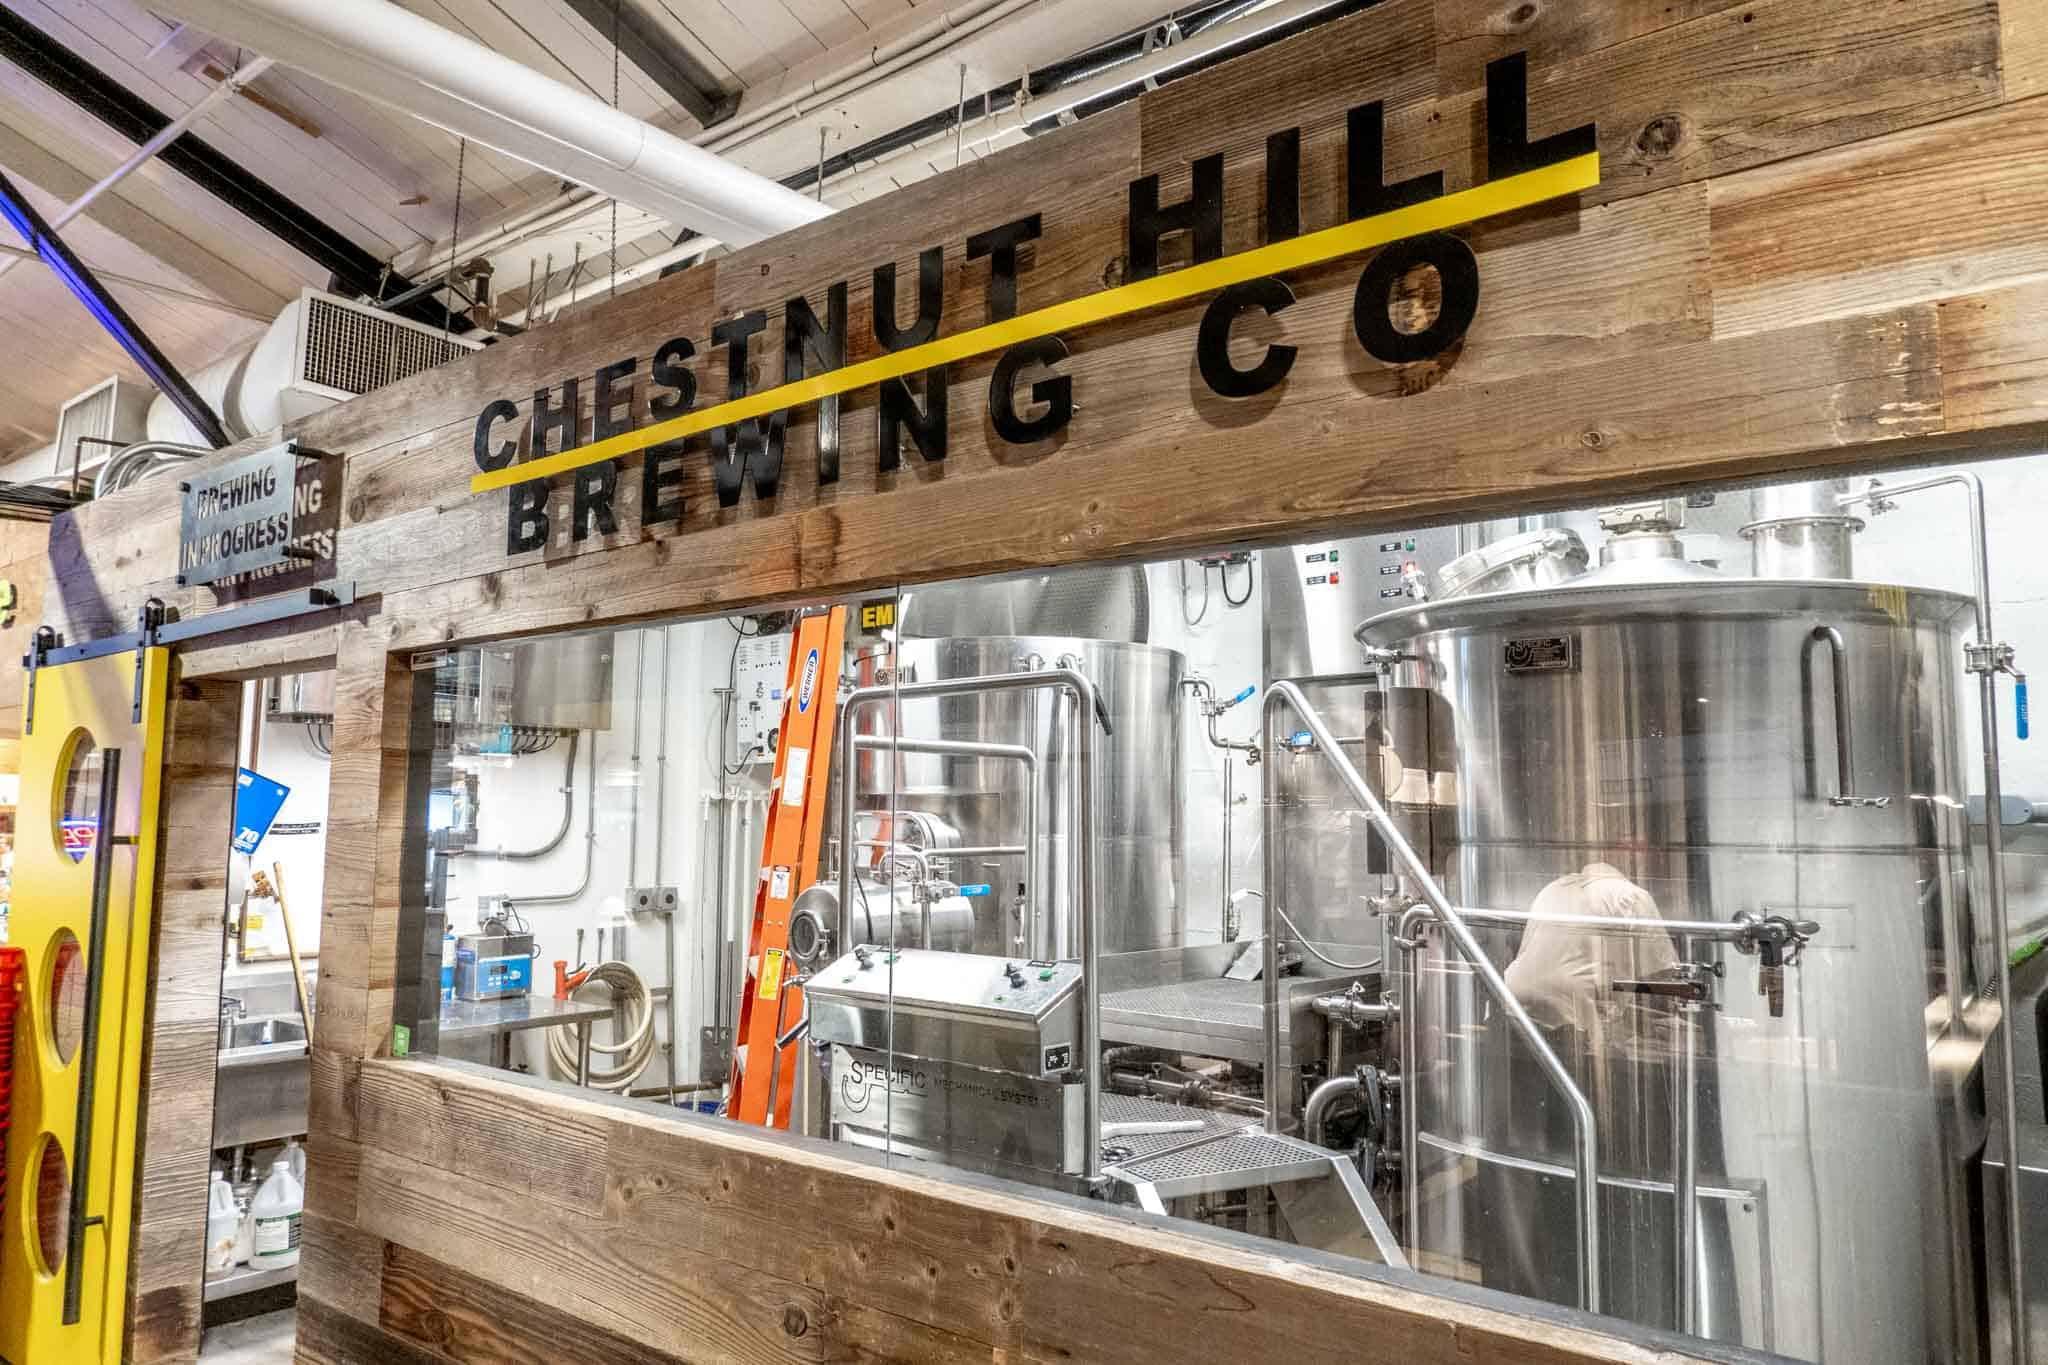 Brewing equipment at Chestnut Hill Brewing Co.